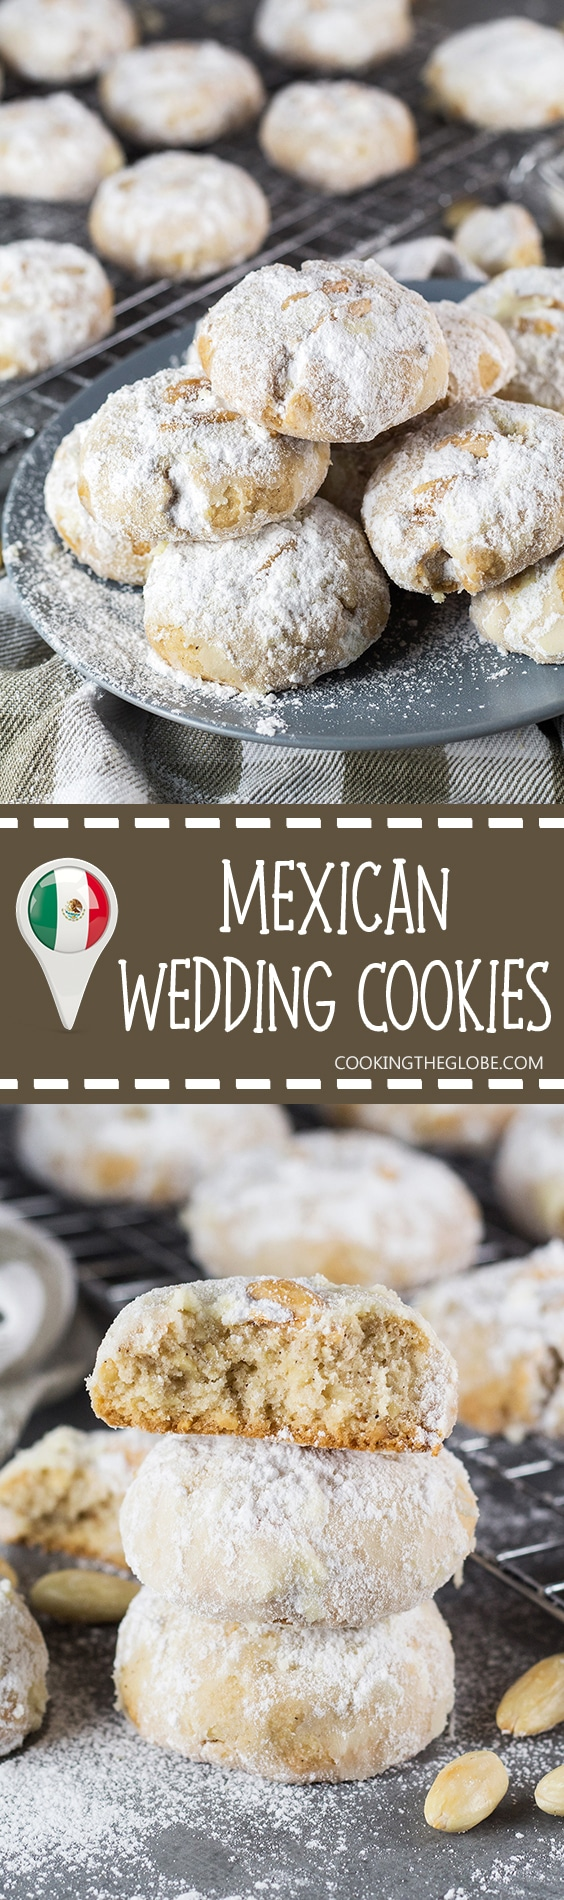 These Mexican Wedding Cookies are buttery, crumbly, nutty, and topped ...